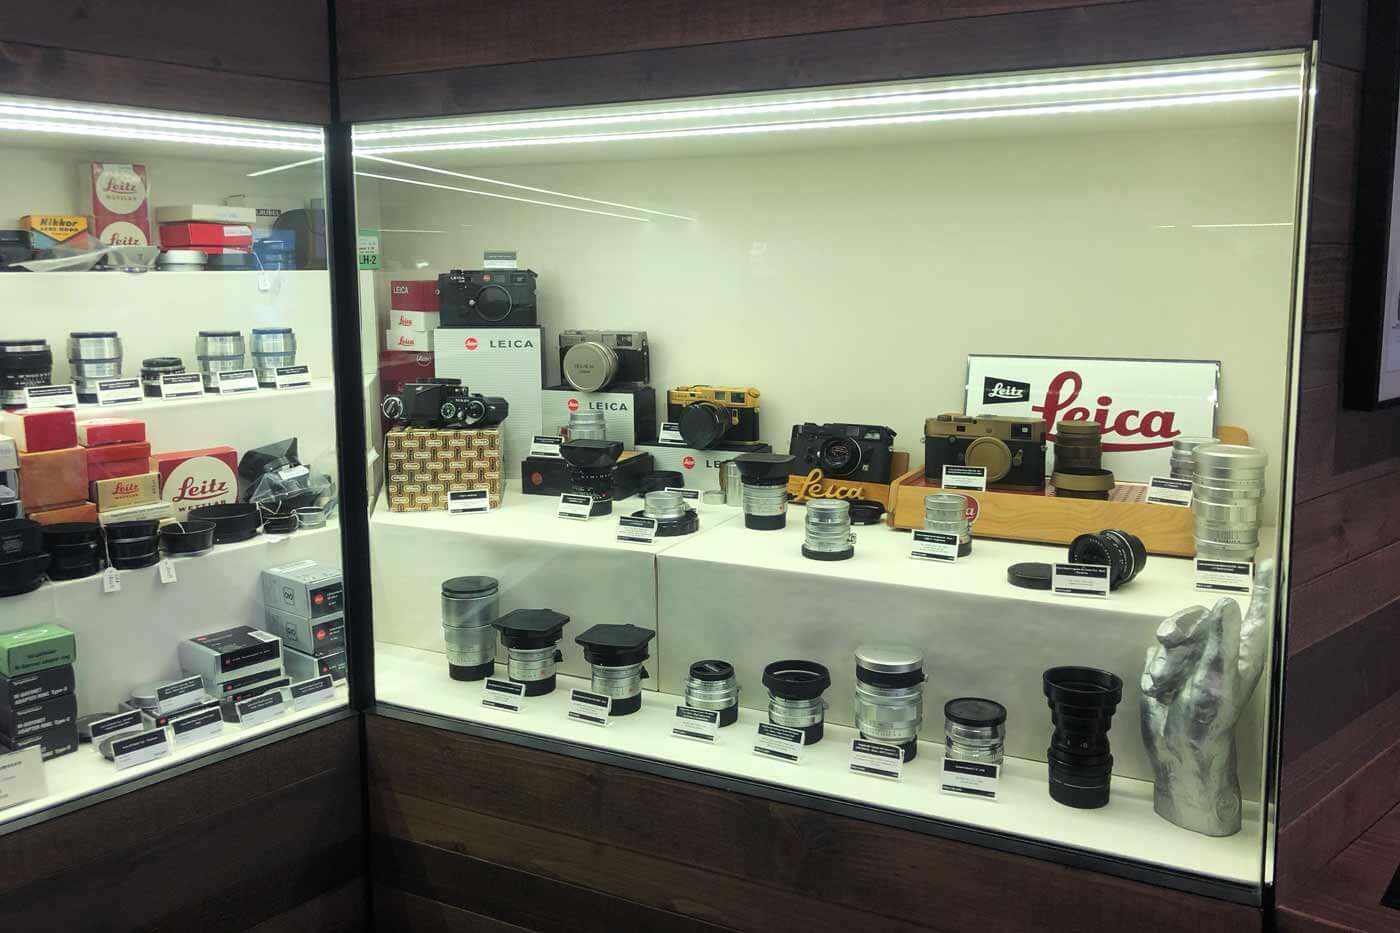 Camera-shop-shops-hong-kong-hk-location-guide-tips-purchase-consignment-second-hand-pre-owned-lenses-cameras-fotopia-display-cabinet-leica-specialist-medium-format-rare-collectibles